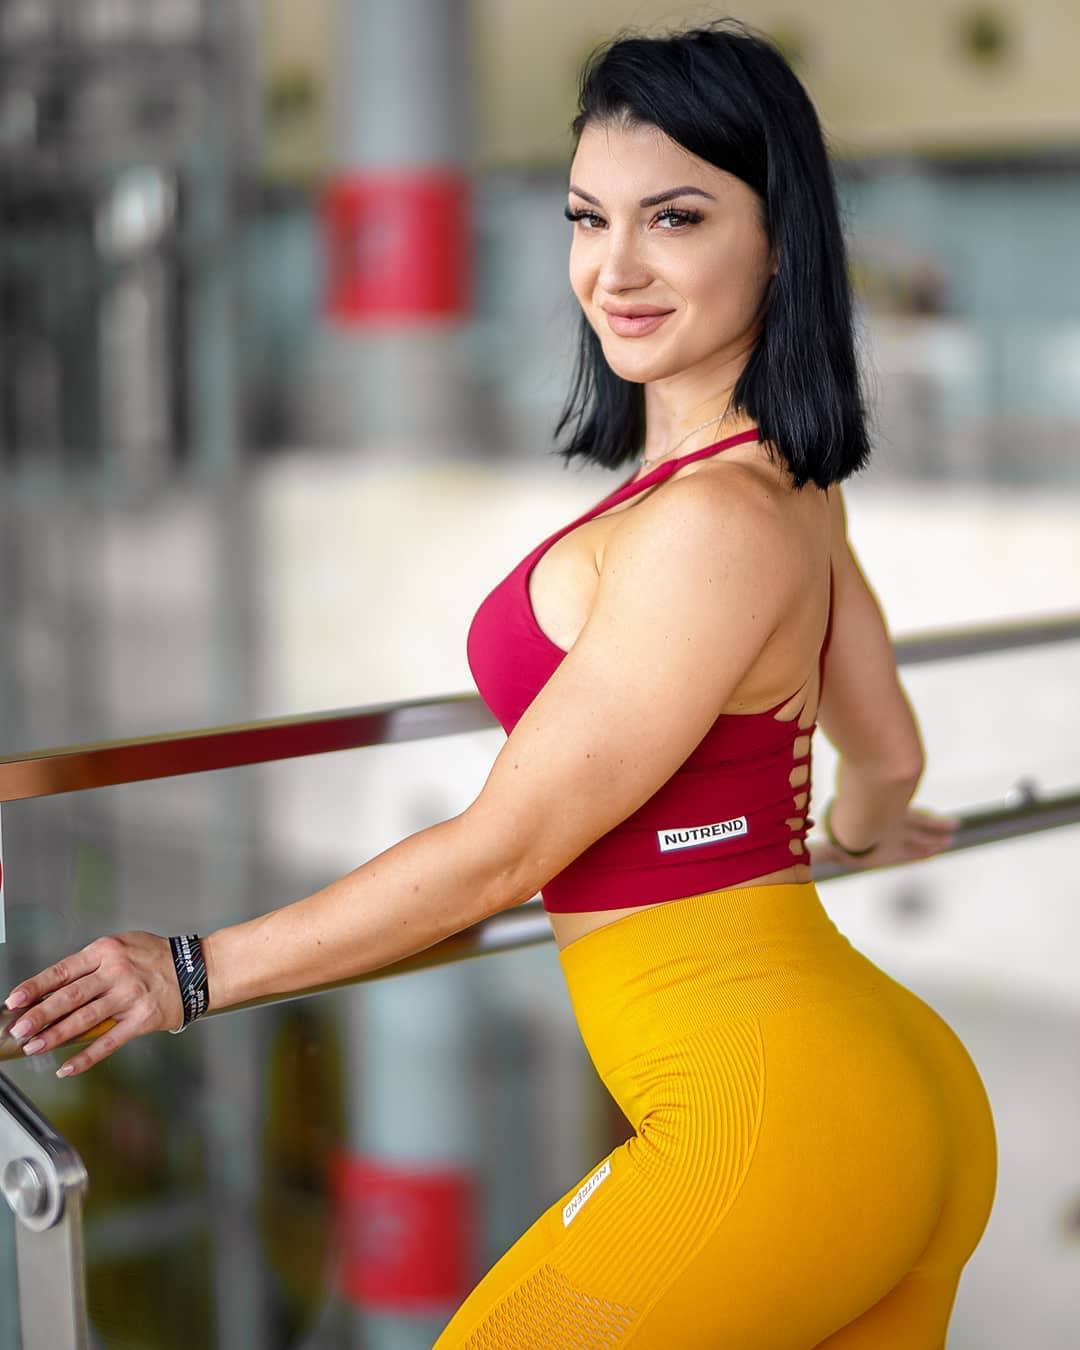 Valerija-Slapnik-Wallpapers-Insta-Fit-Bio-5